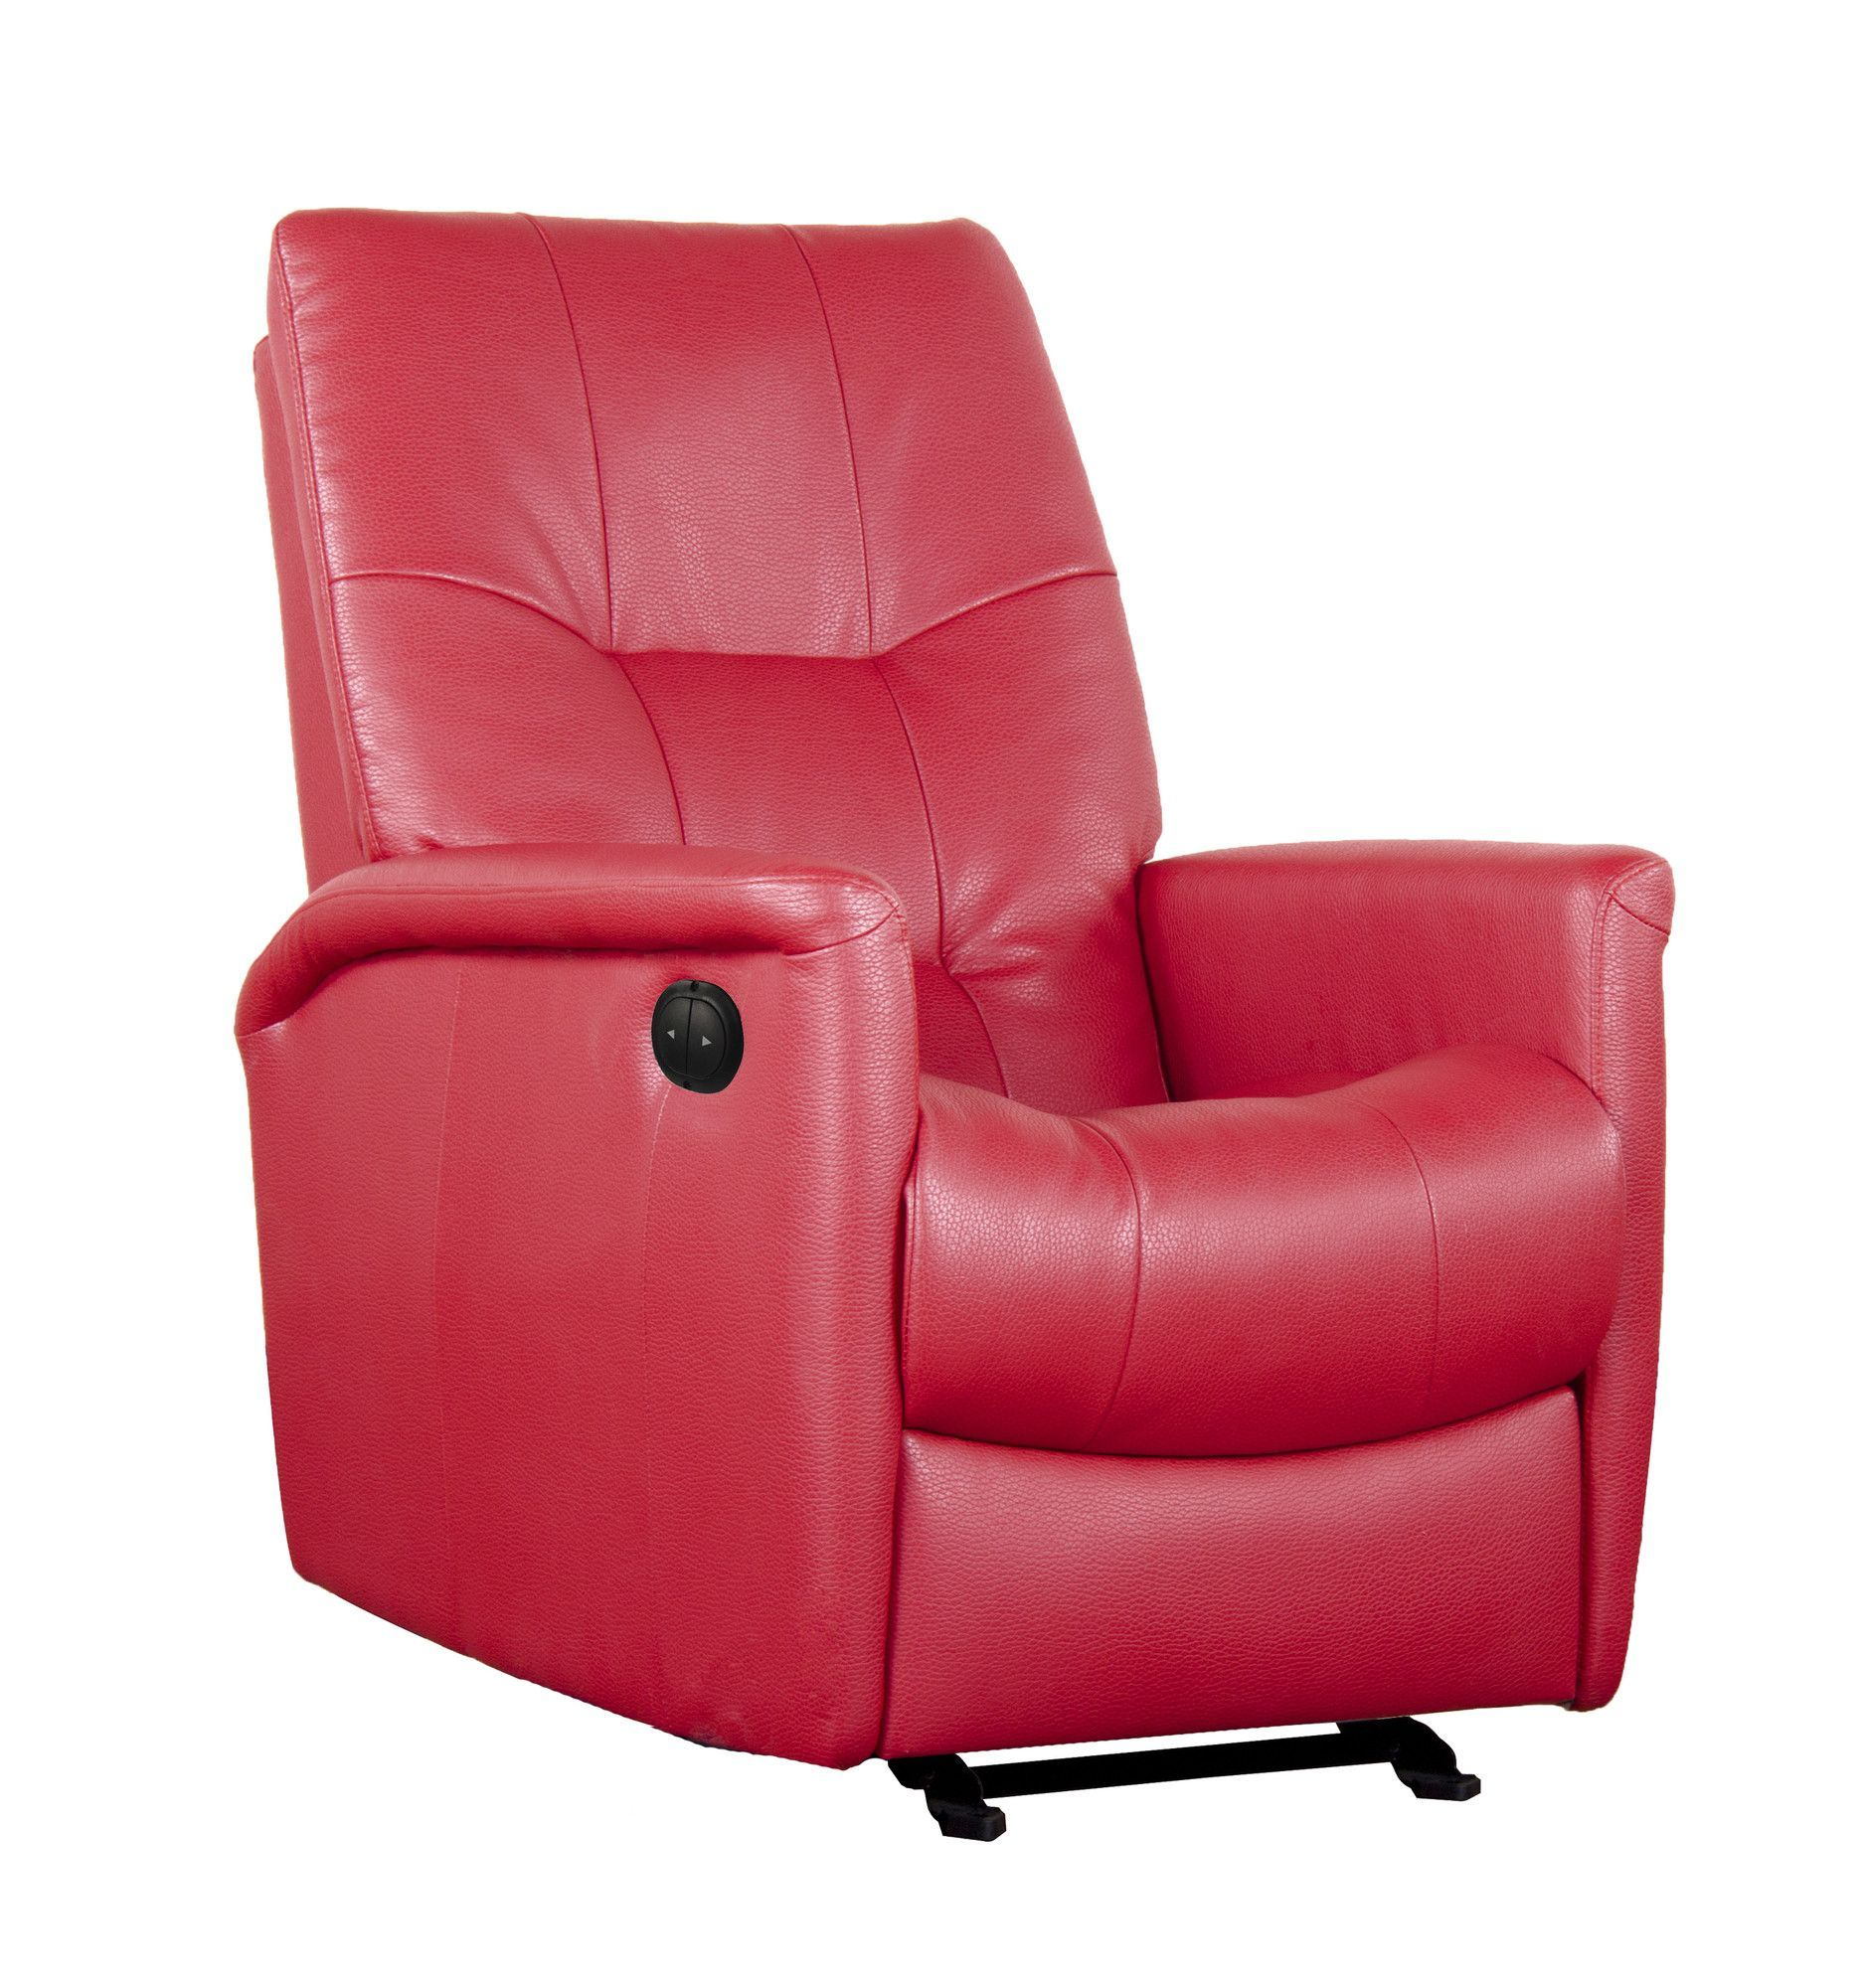 Electric Power Recliner Electric Power Motion Recliner | Products | Pinterest